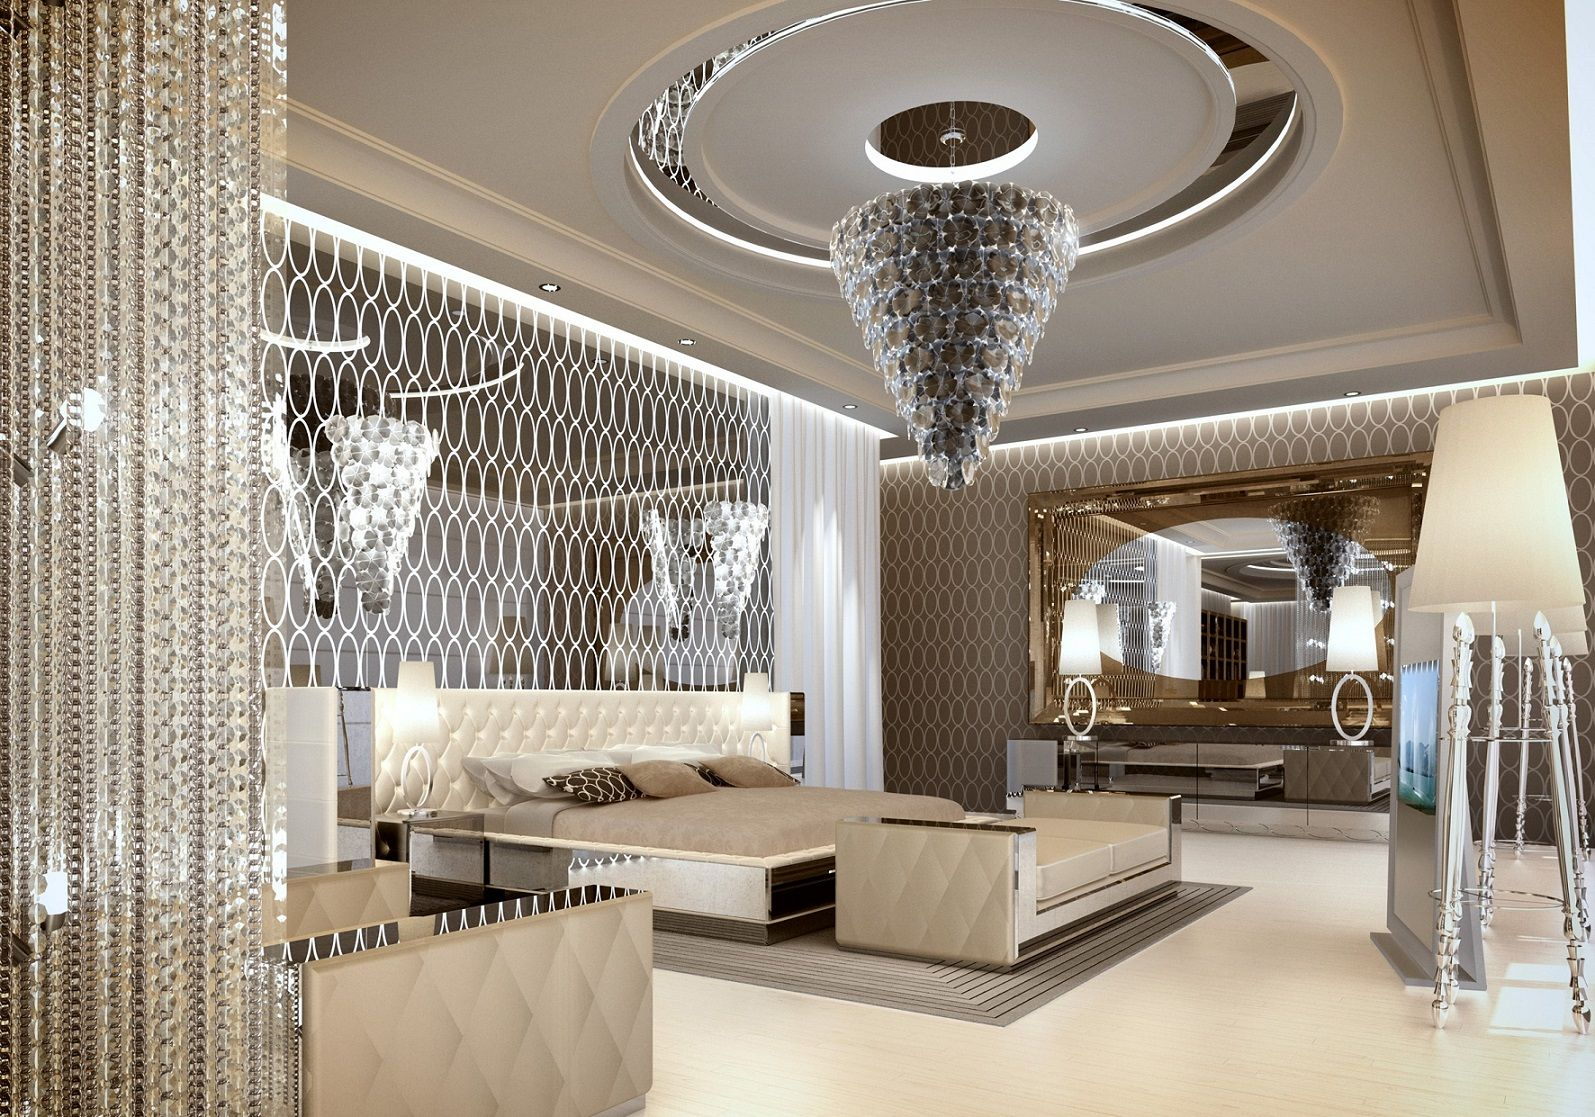 Ultra high end hotel signature collection designer for Modern furniture and home decor